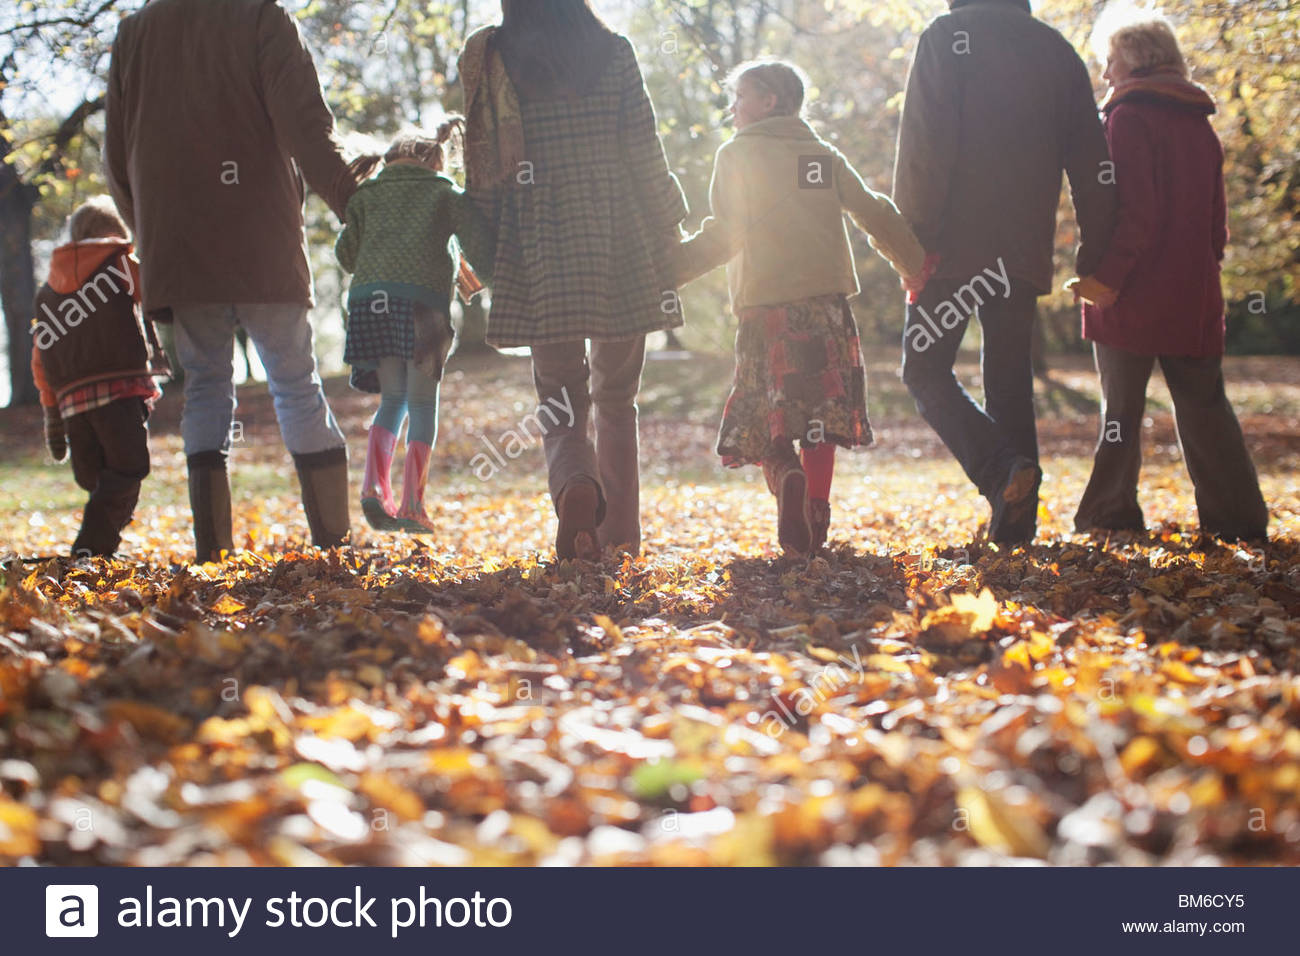 Extended family holding hands and walking outdoors - Stock Image